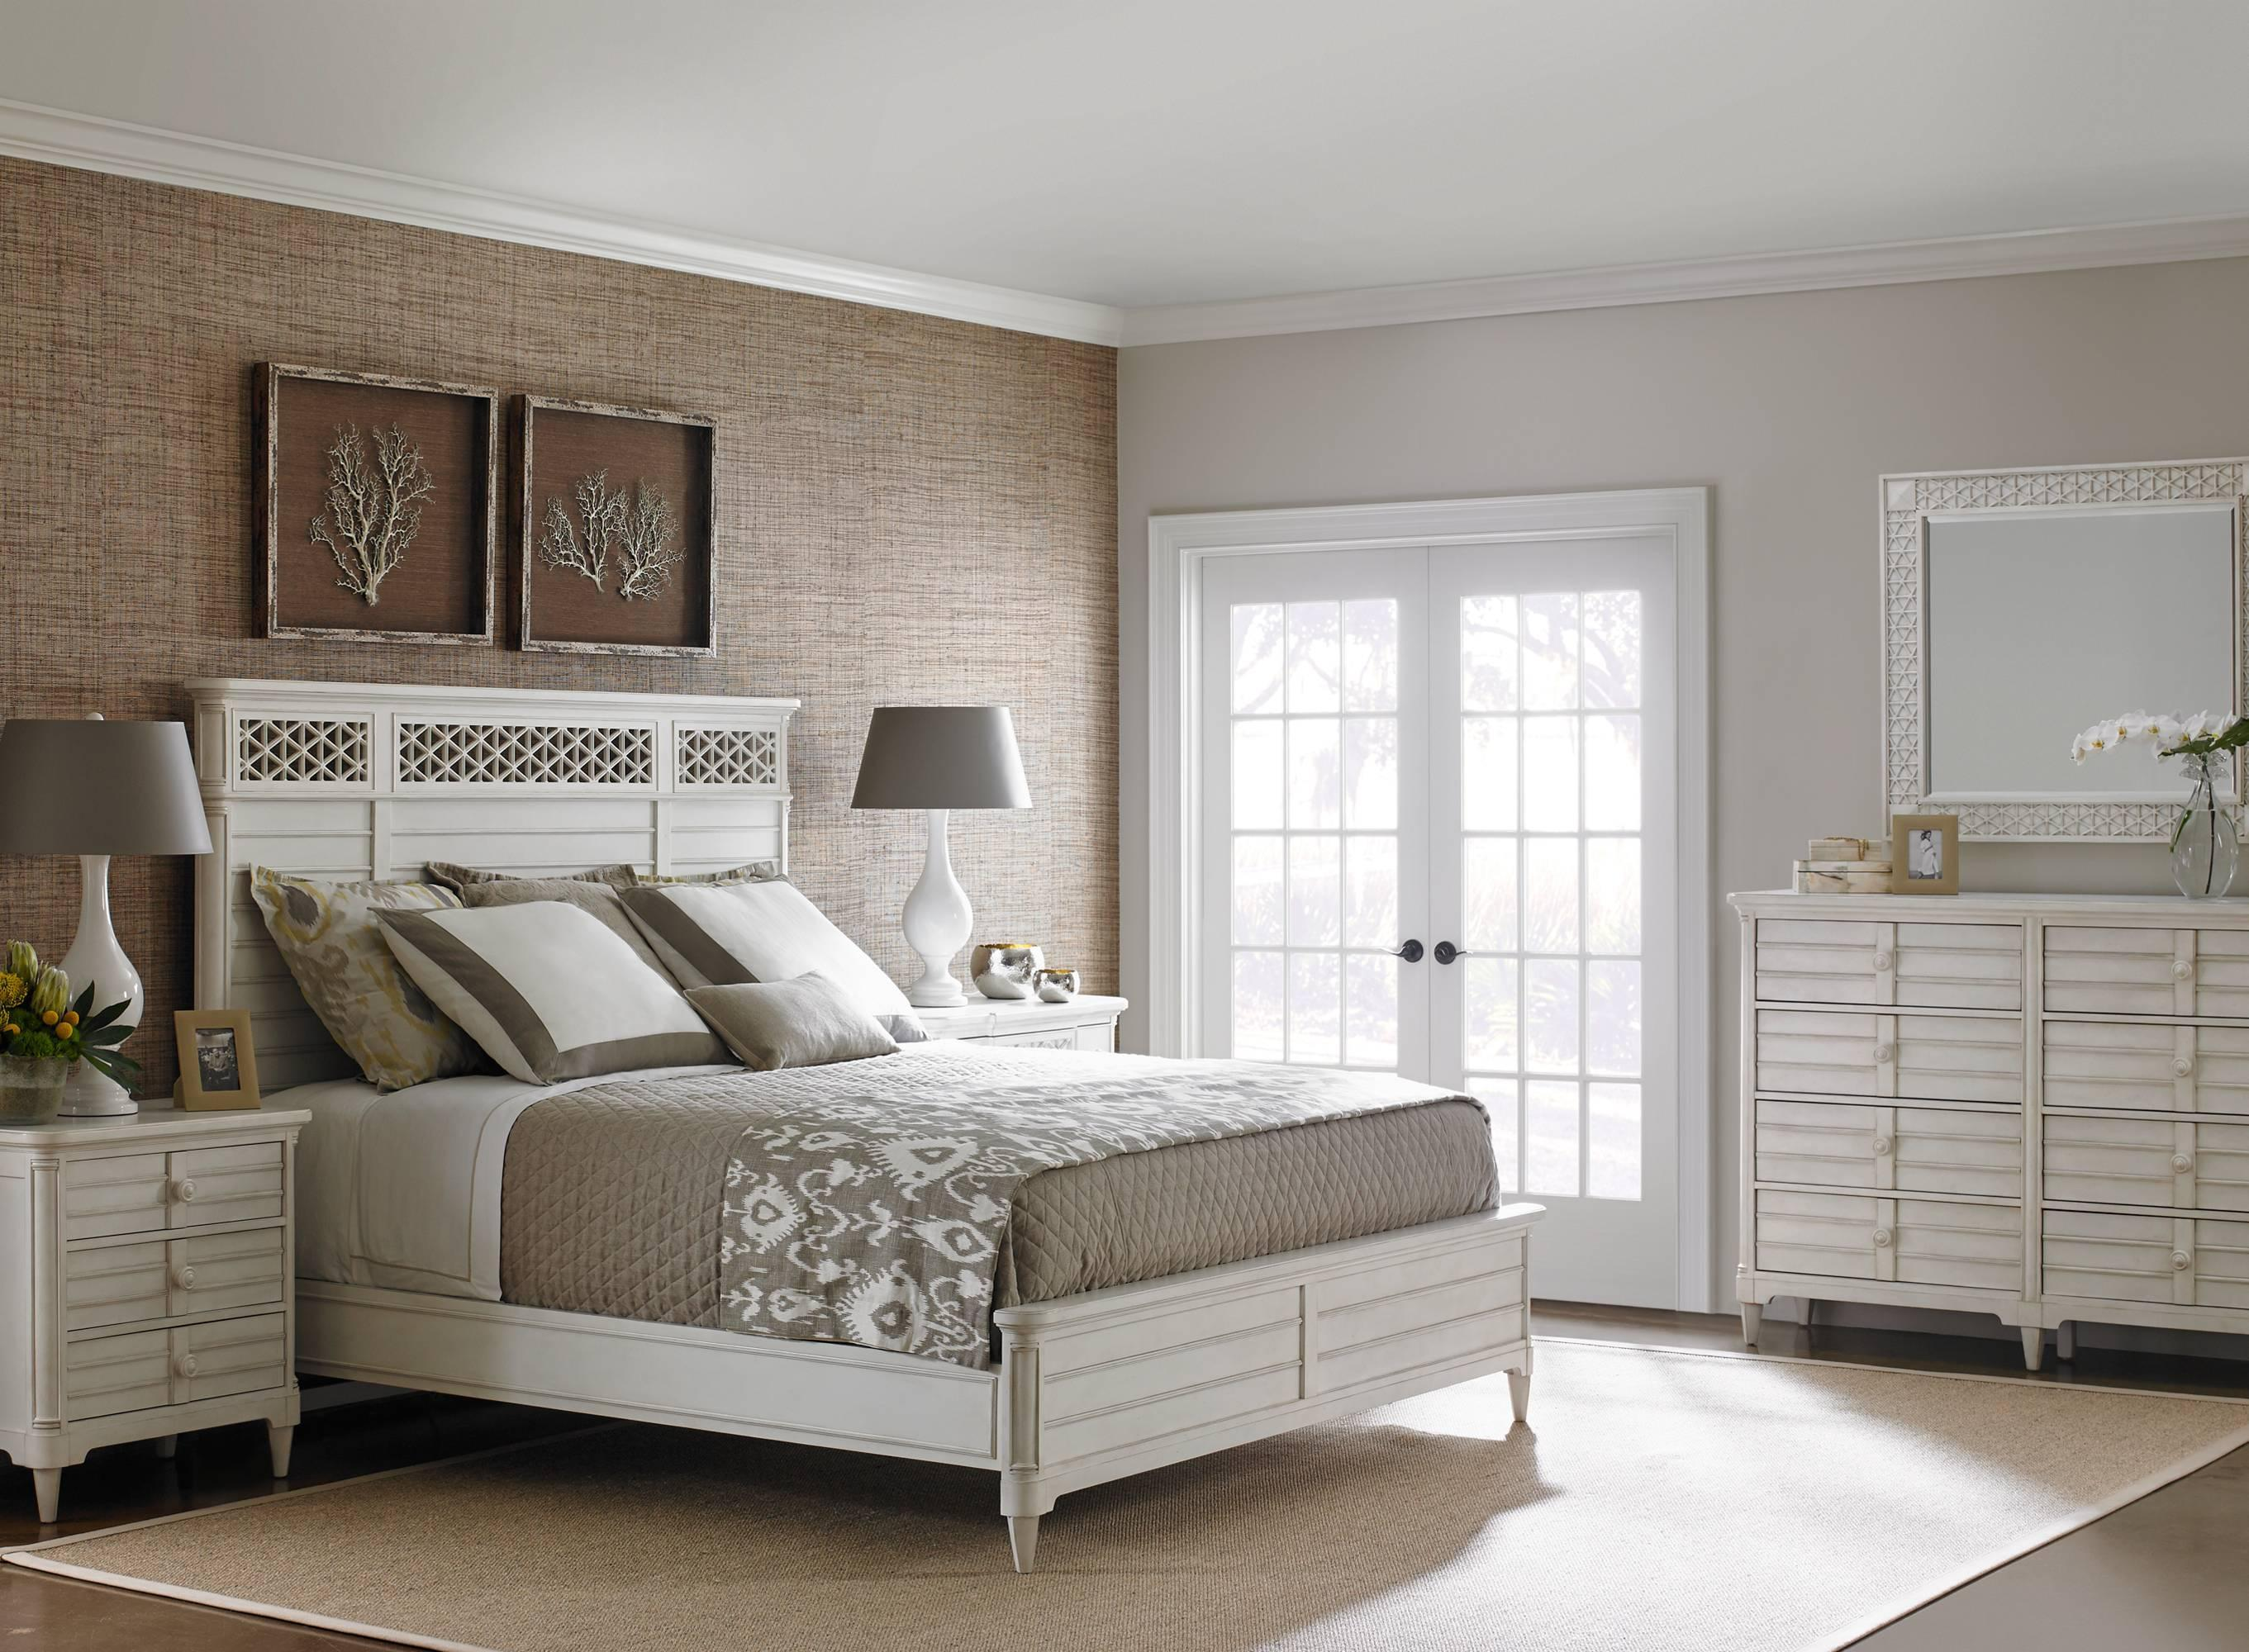 Stanley Furniture Cypress Grove  Queen Bedroom Group - Item Number: 451-23 Q Bedroom Group 2